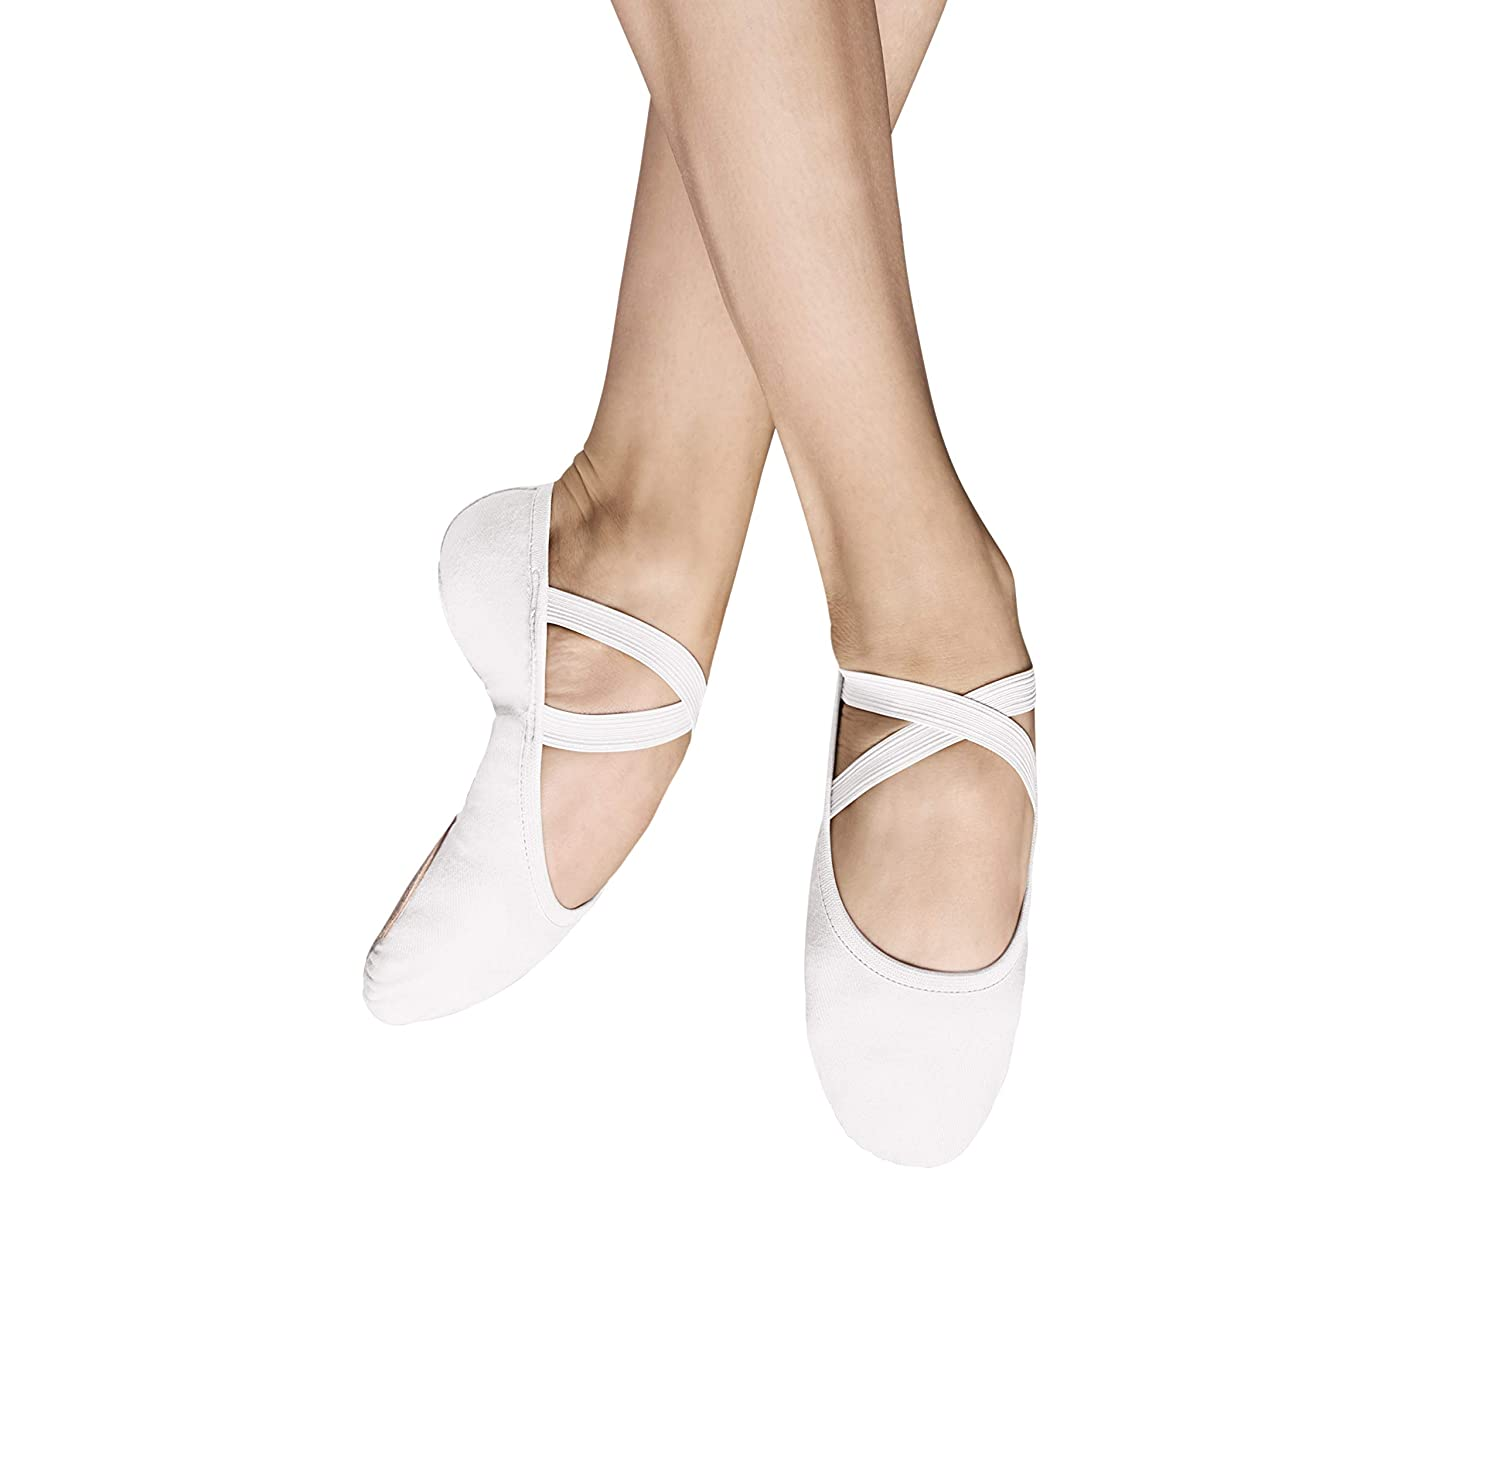 人気ブランドを [Bloch] Performa 3 Ballet Shoe Fabric Flat ホワイト Performa B07B1RHL9B 3 D US|ホワイト ホワイト 3 D US, SIMPLE PLEASURE:8764c1a6 --- a0267596.xsph.ru